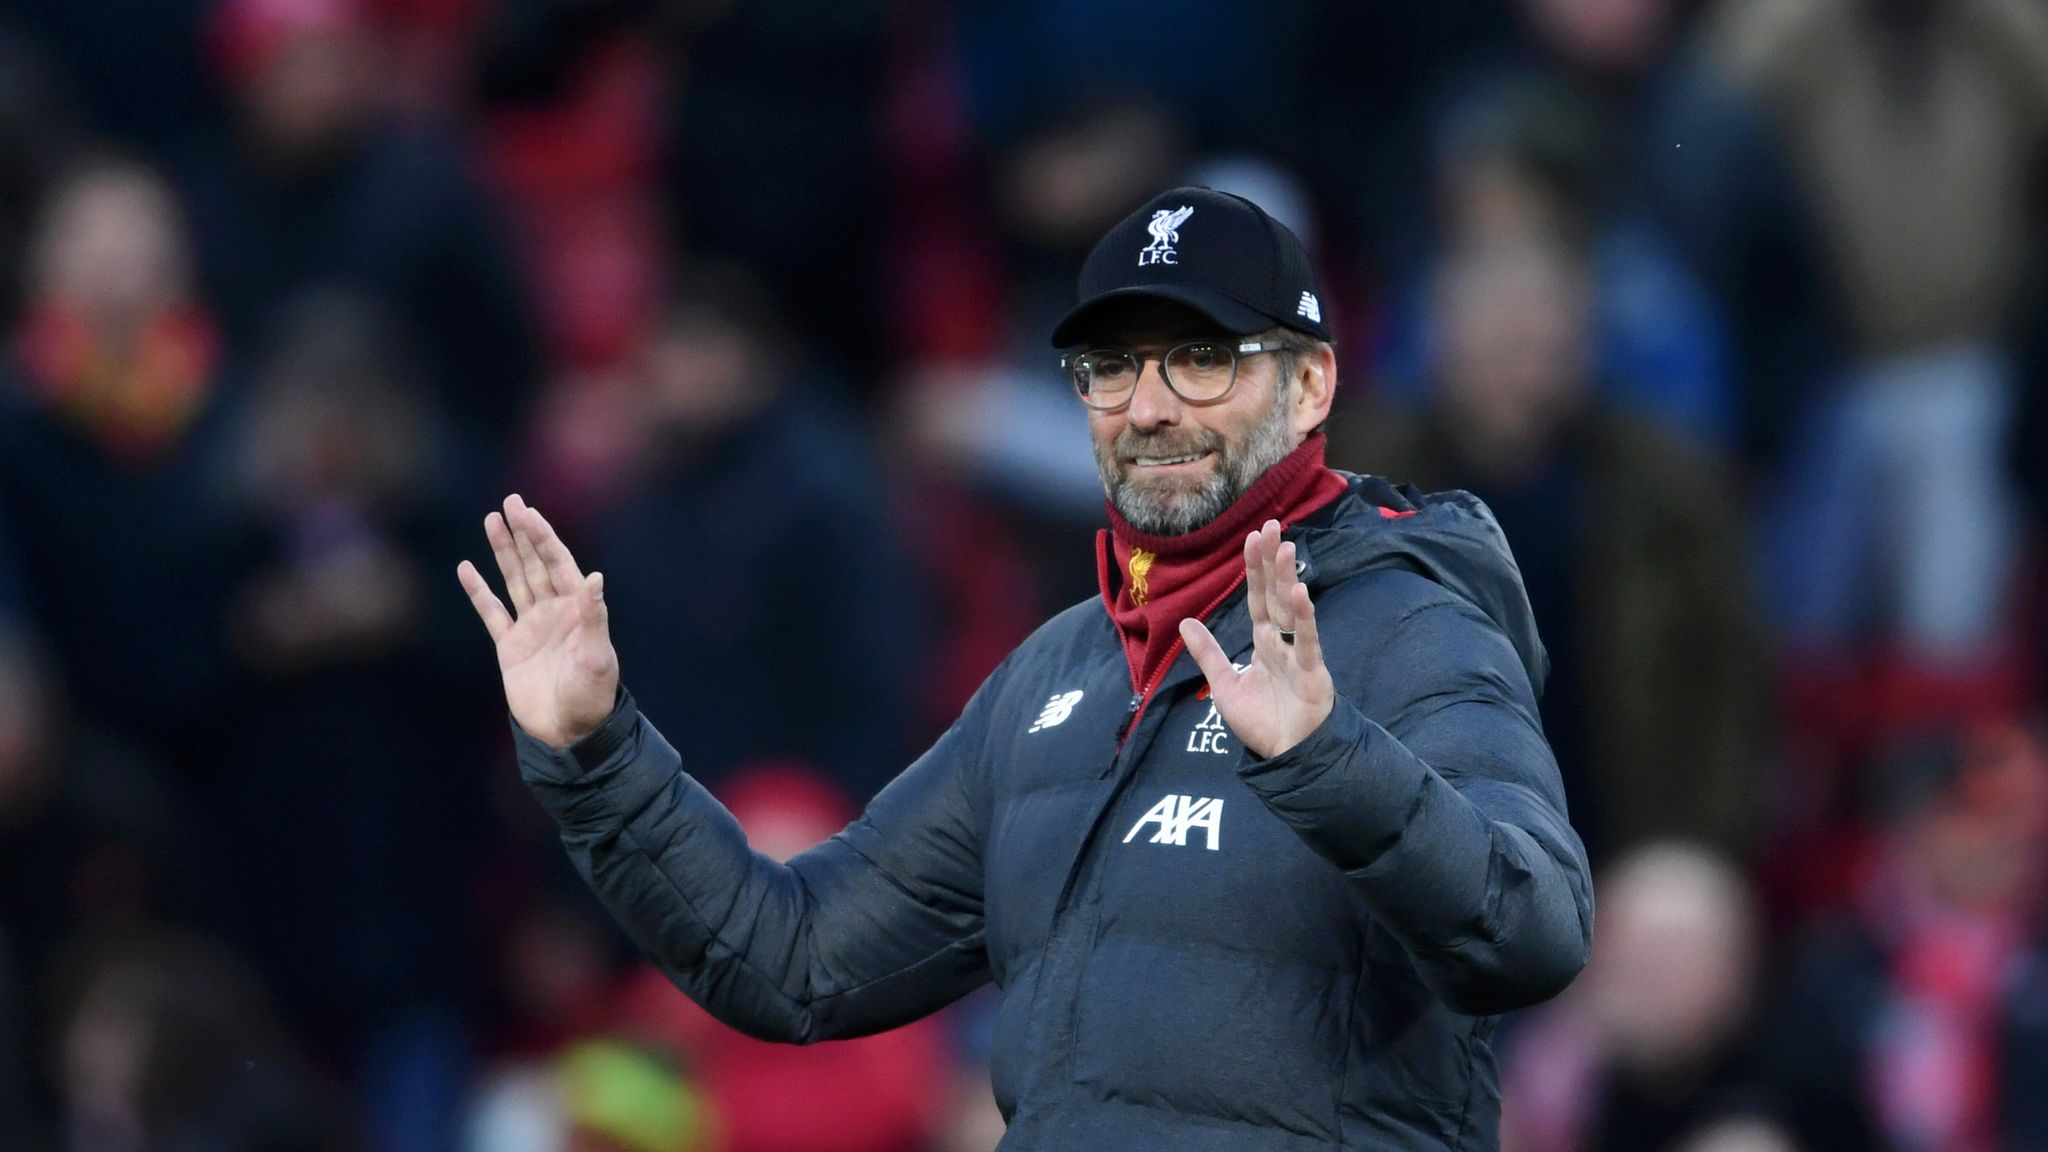 Jurgen Klopp says 'no pressure' on Liverpool at Club World Cup